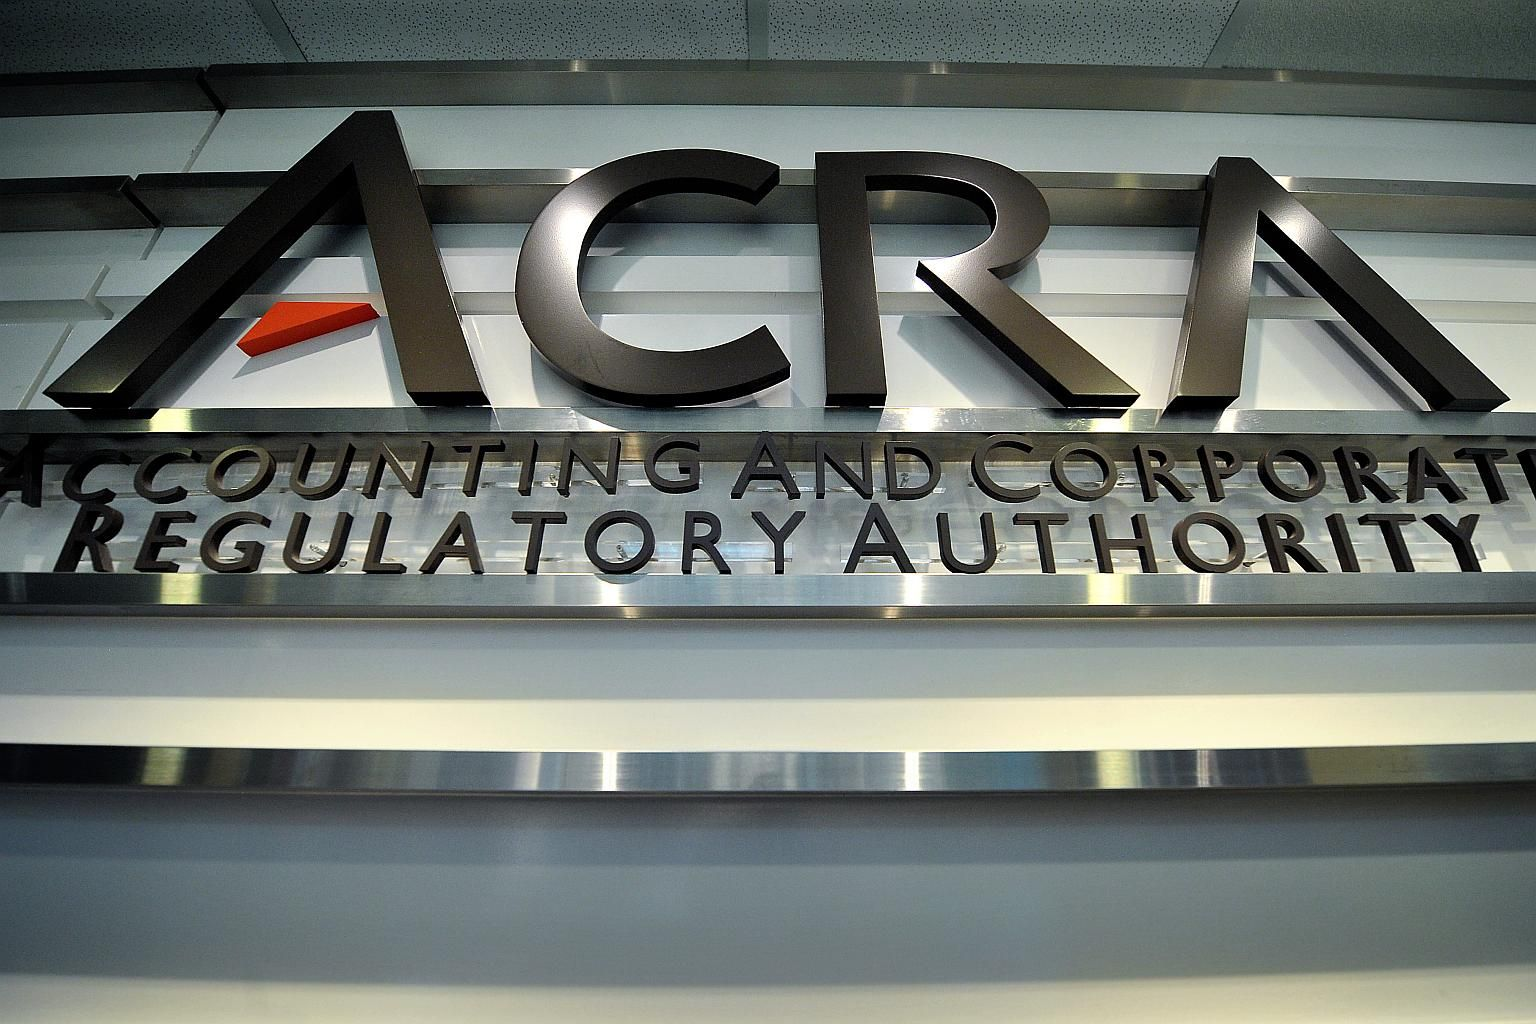 Accounting and Corporate Regulatory Authority (ACRA)